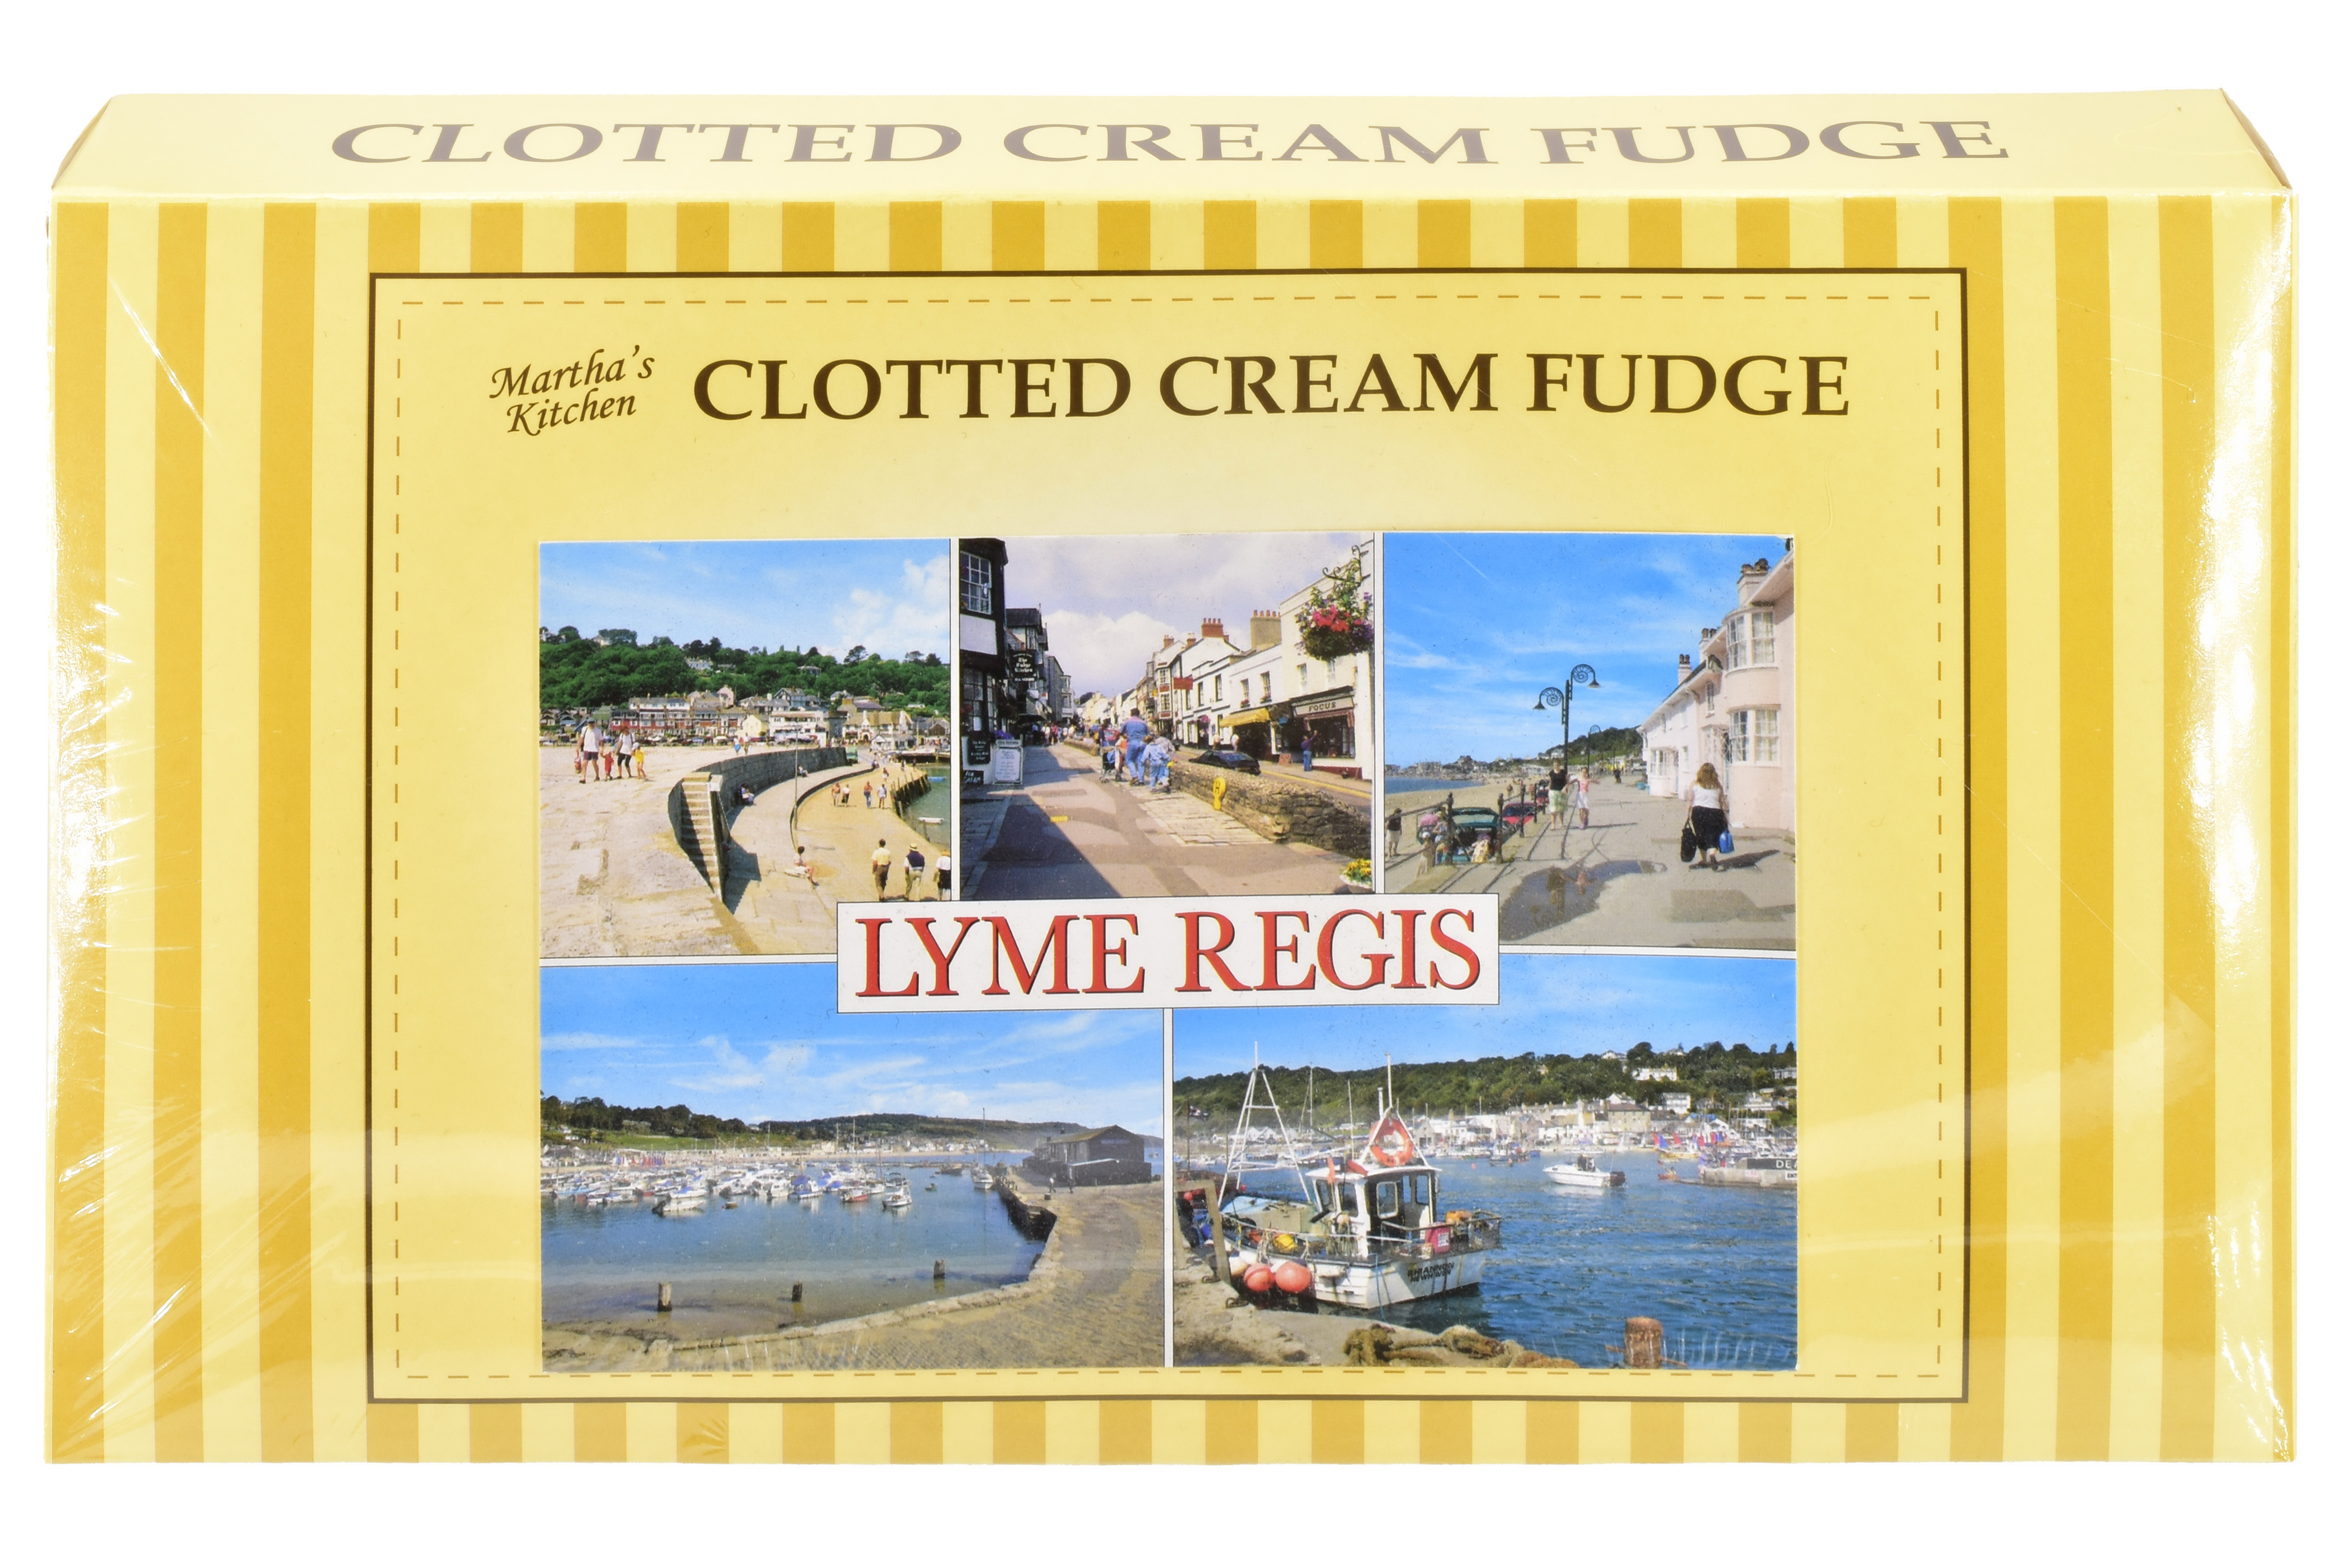 300g Clotted Cream Fudge Postcard Gift Box